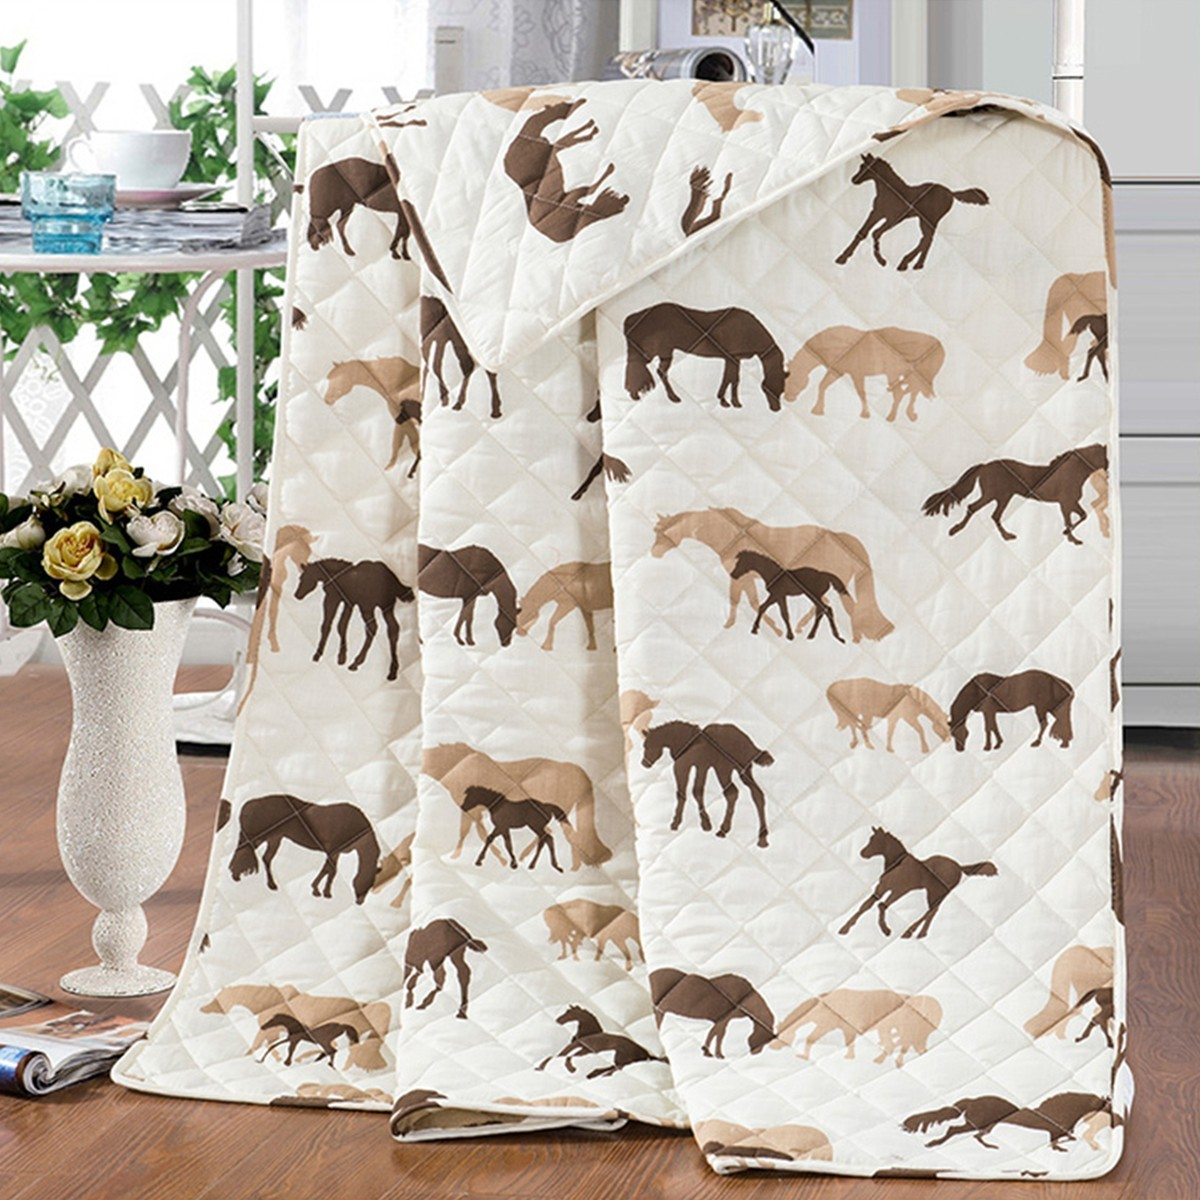 Brown Cartoon Horse Quilt Set with Two Shams, Full (DK-WX021)